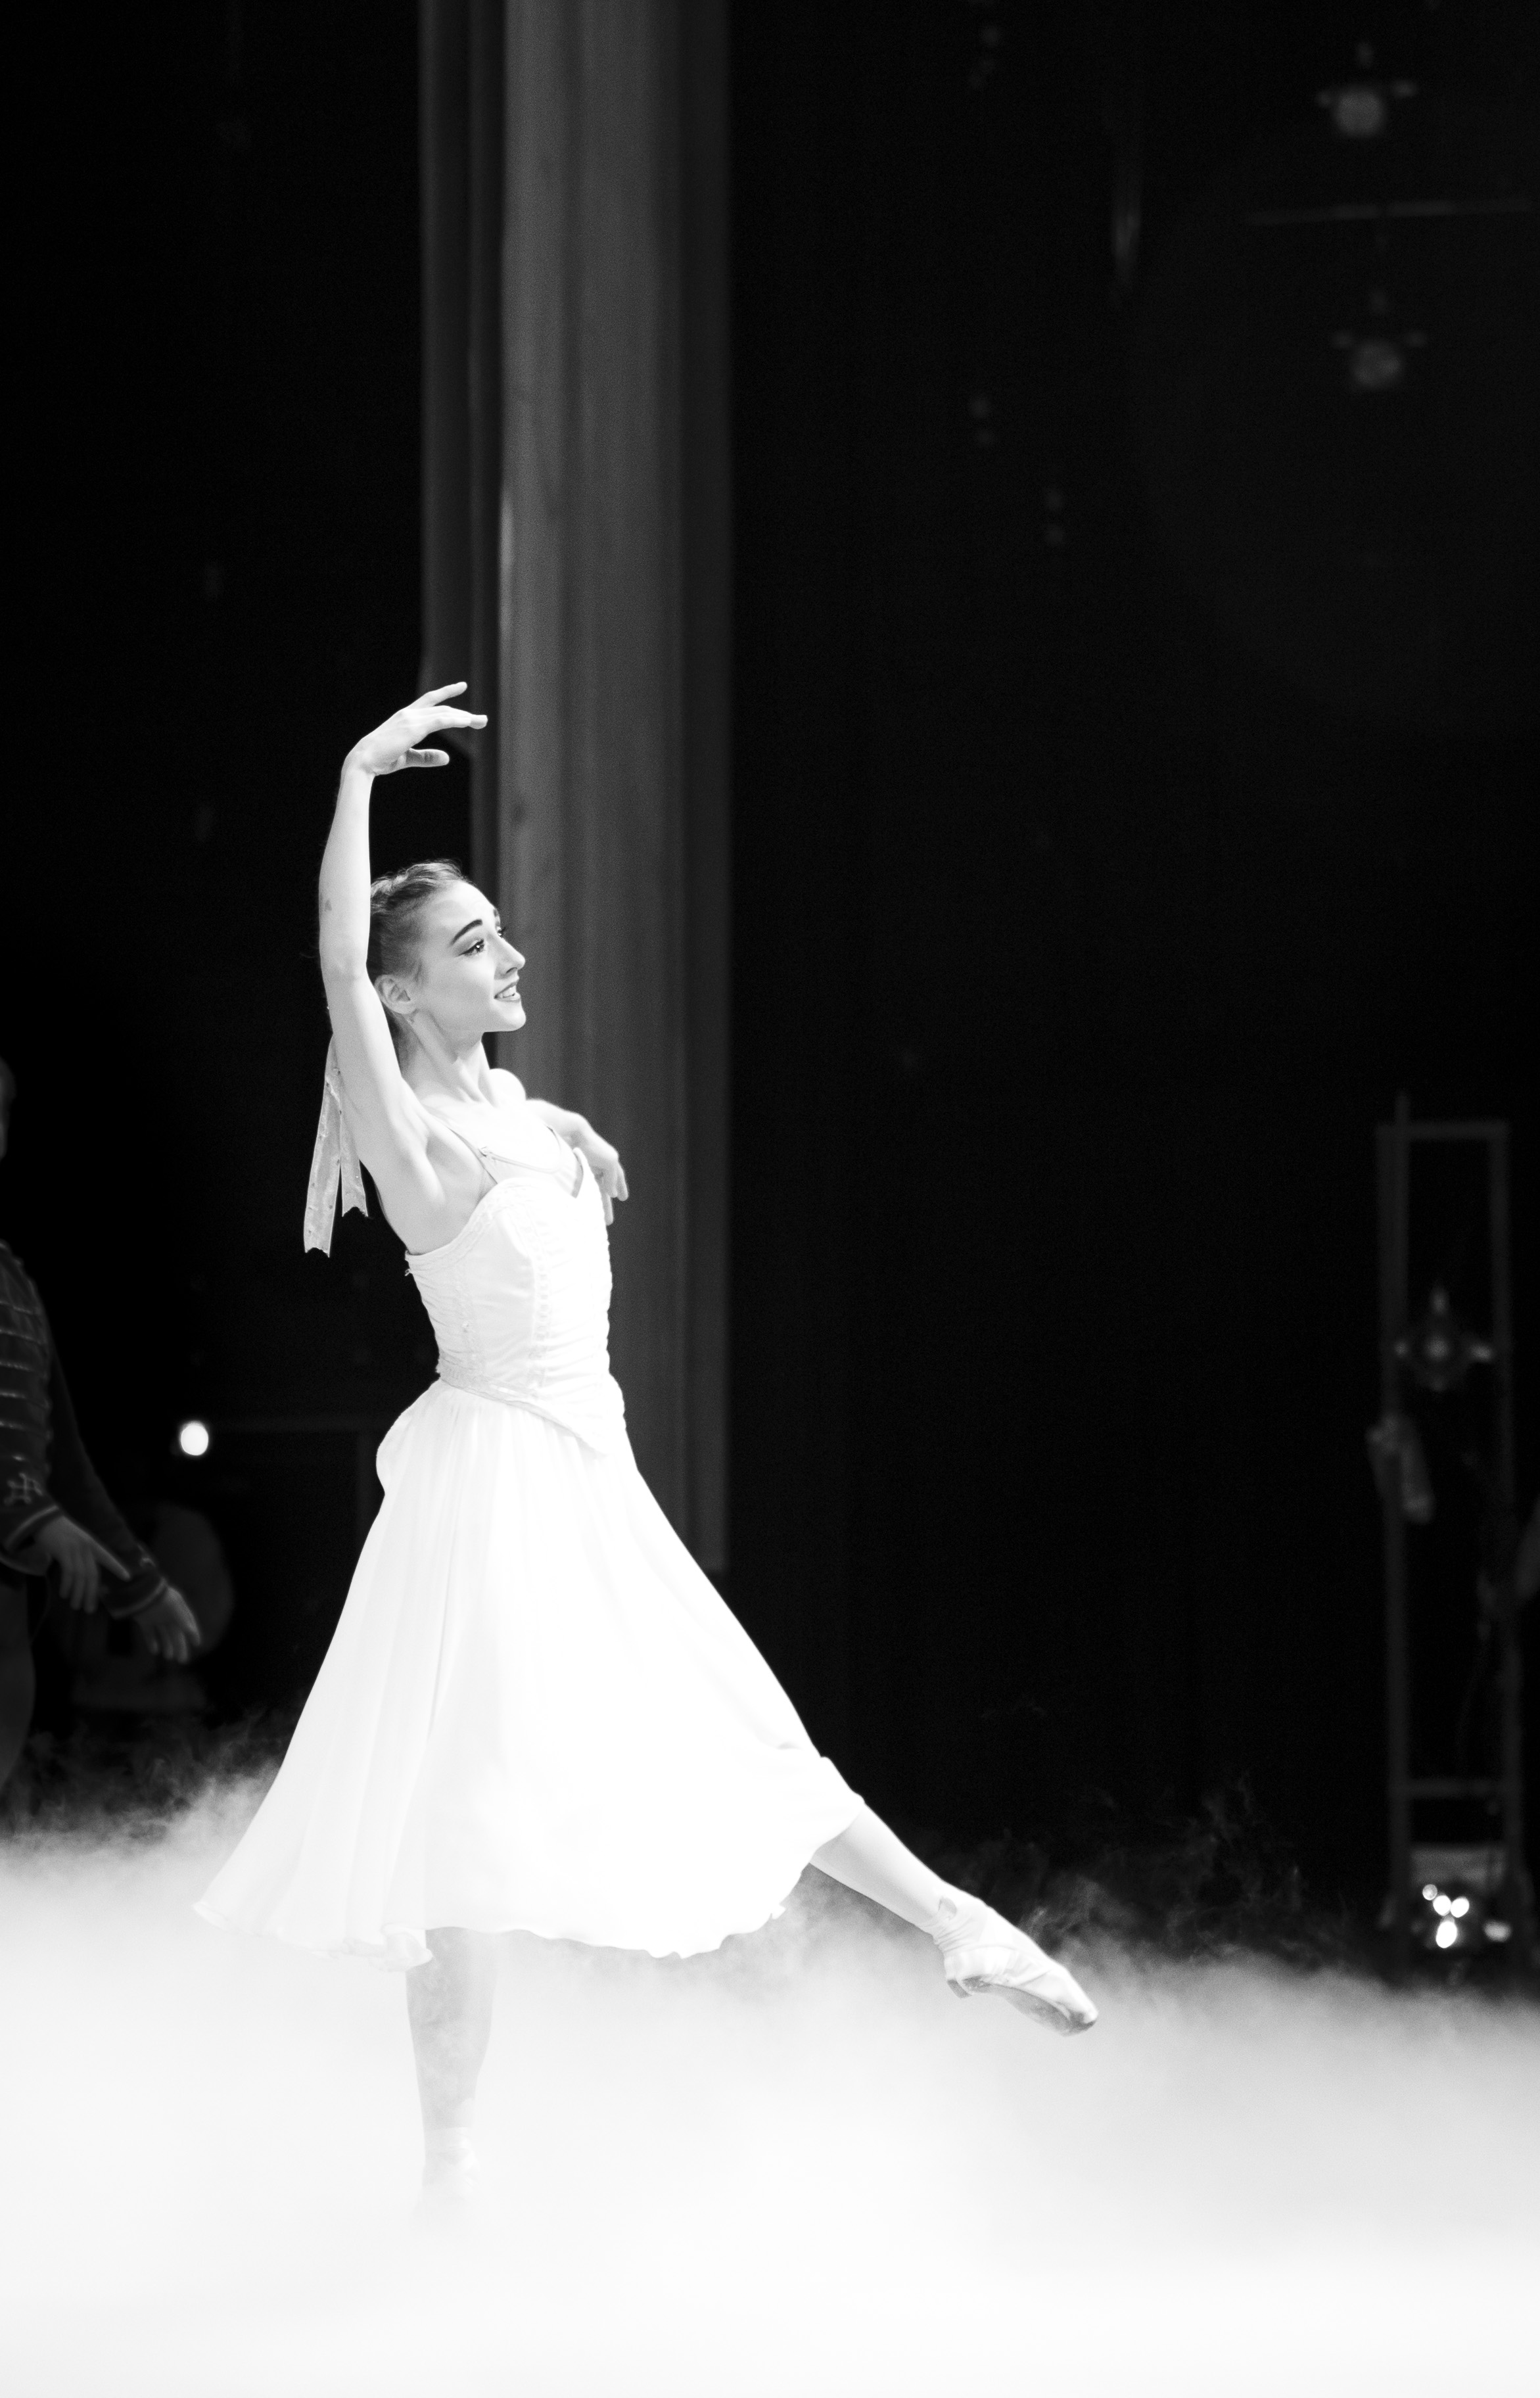 BSA_NutCracker_Performace_12-08-2019_051